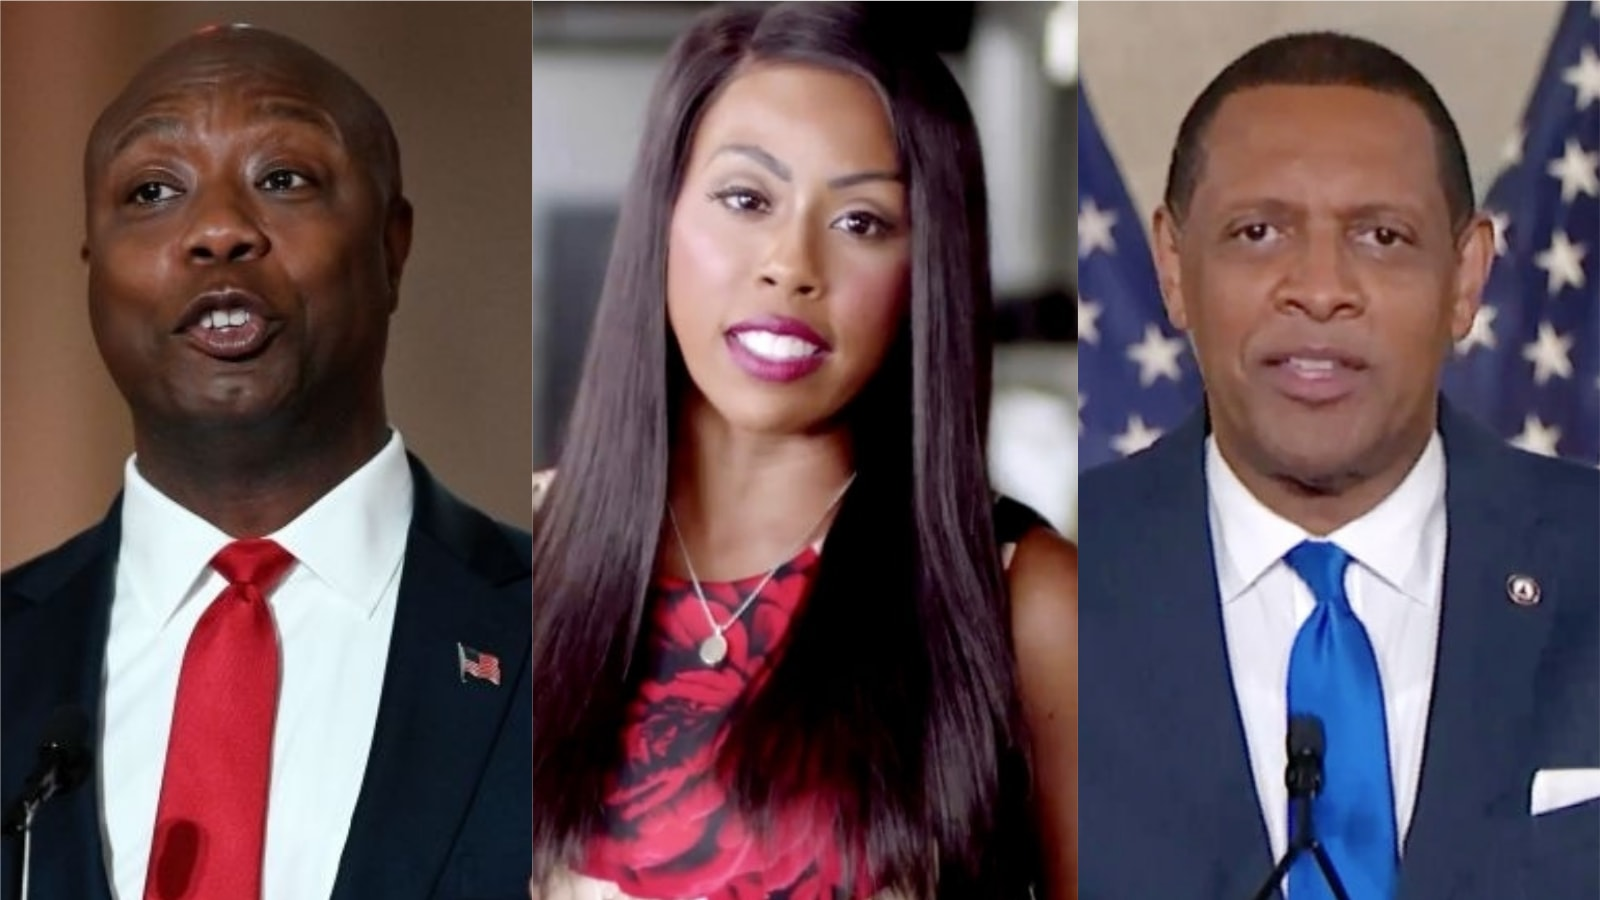 From Pandering Callouts To Praise Of Trump, Here's What The Black People At The RNC Have To Say